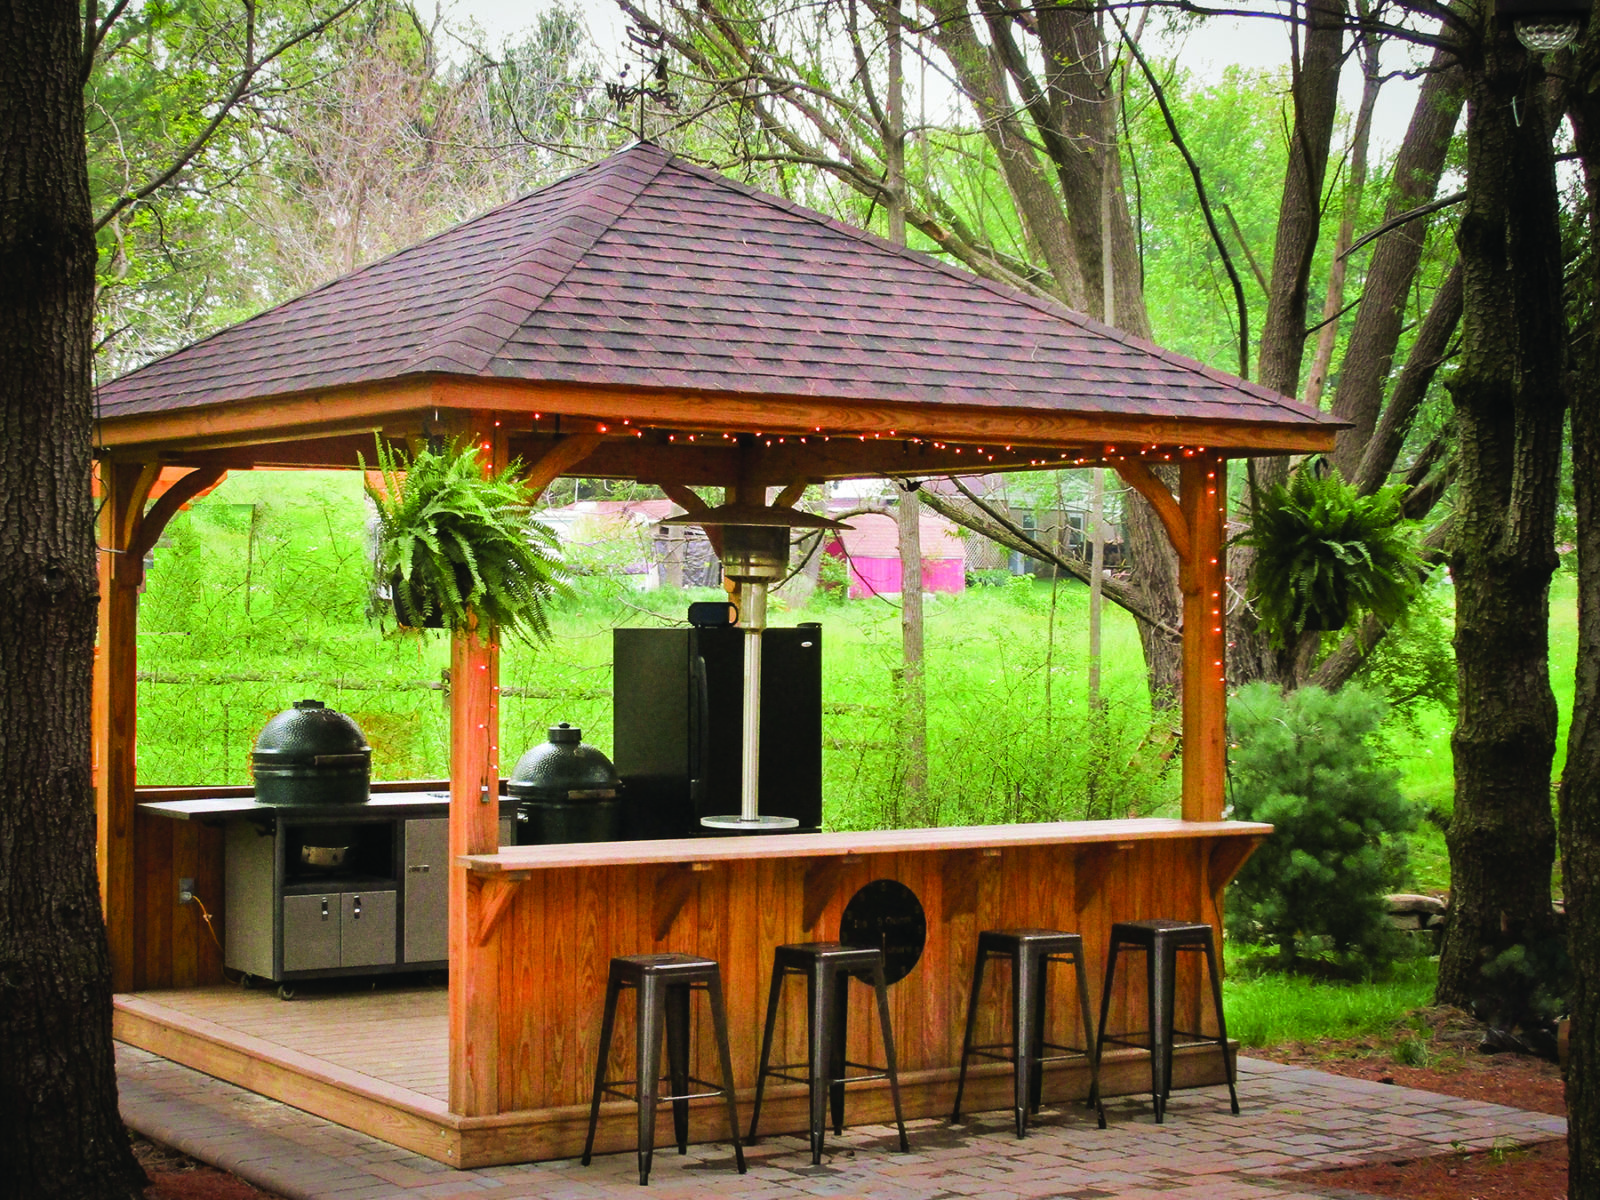 2020 Relaxing Cheyenne Garden Pavilions | Lancaster, PA on Outdoor Patio Pavilion id=90105